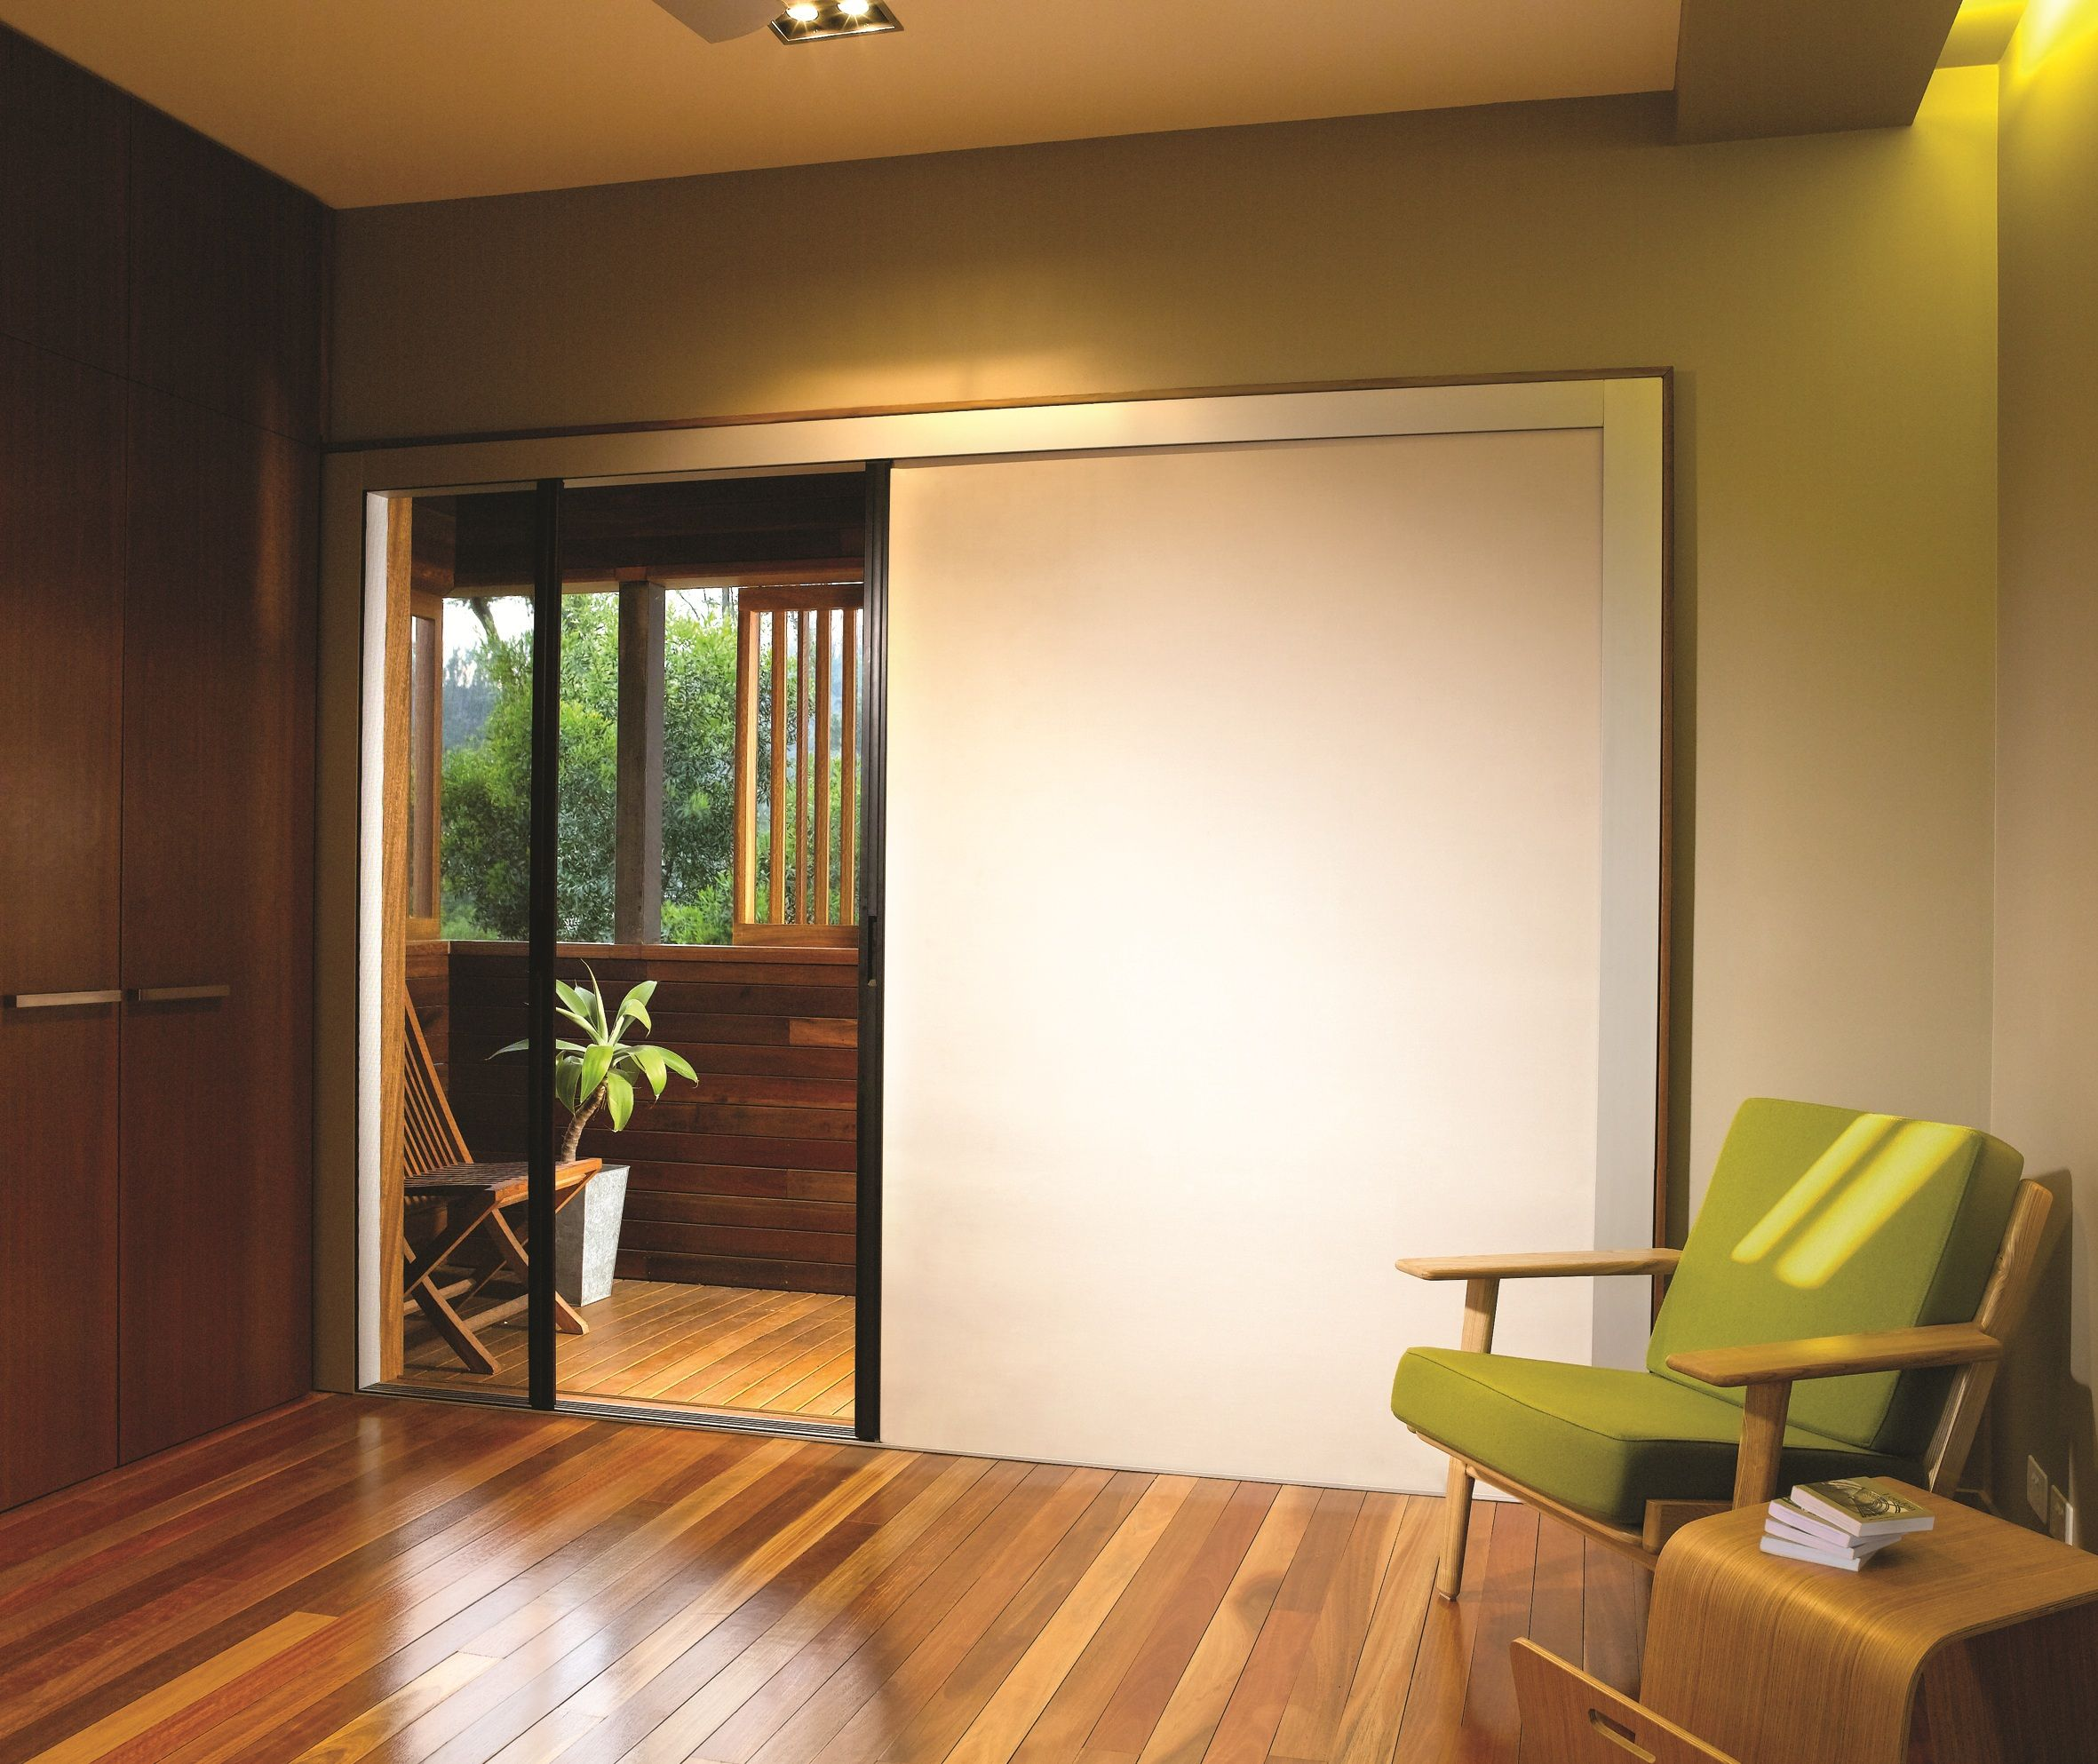 For the large openings created by folding or sliding doors Centor\u0027s blind offers a functional and discreet alternative to traditional window coverings. & The Centor S1E Eco-Screen is a world-first retractable insect screen ...